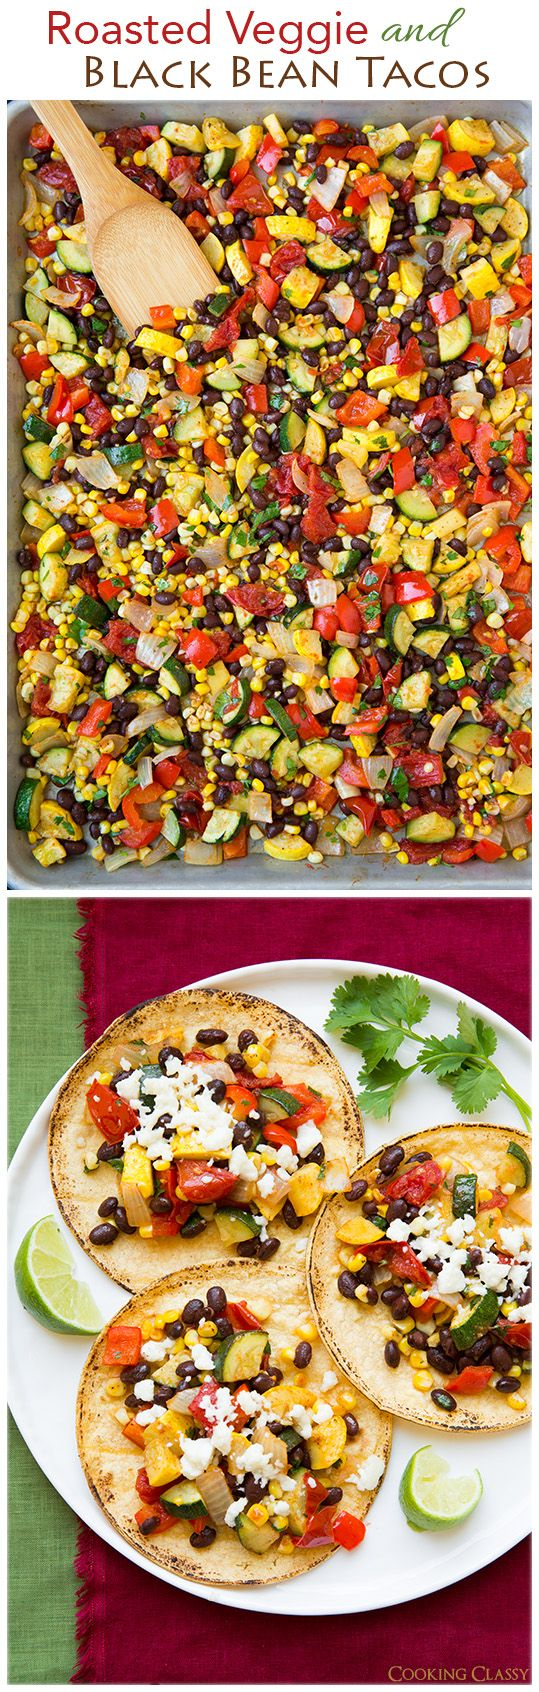 Roasted Veggie and Black Bean Tacos - These tacos are seriously delicious! My whole family loved them, meat loving husband included!